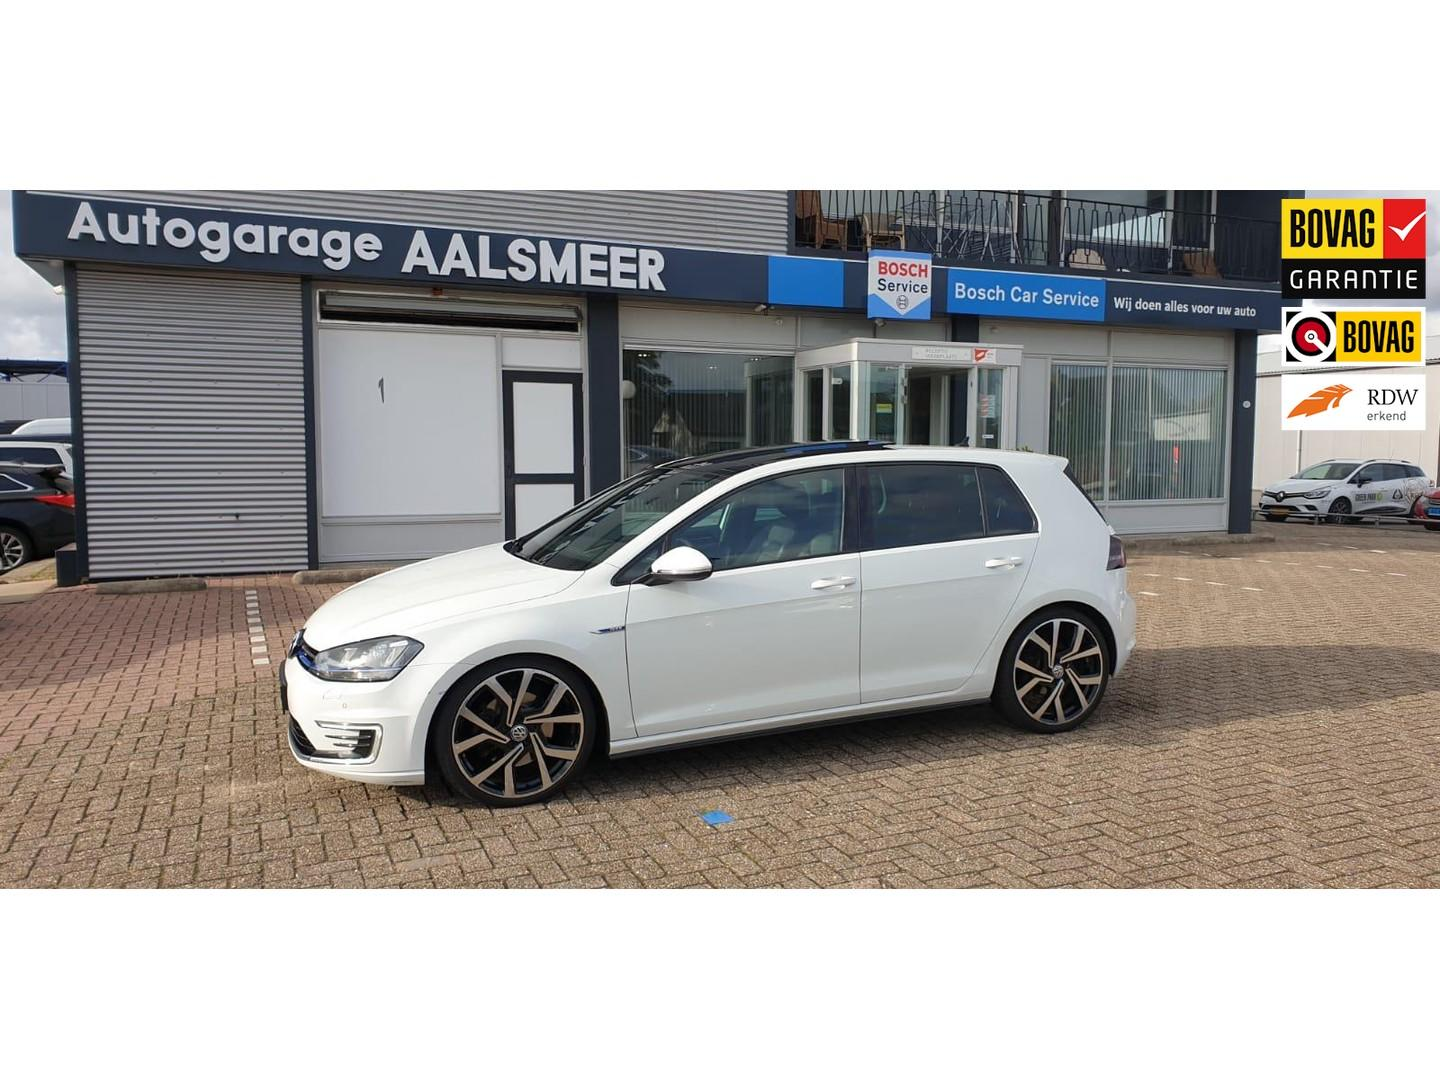 Volkswagen Golf 1.4 tsi gte panorama climatronic dsg automaat